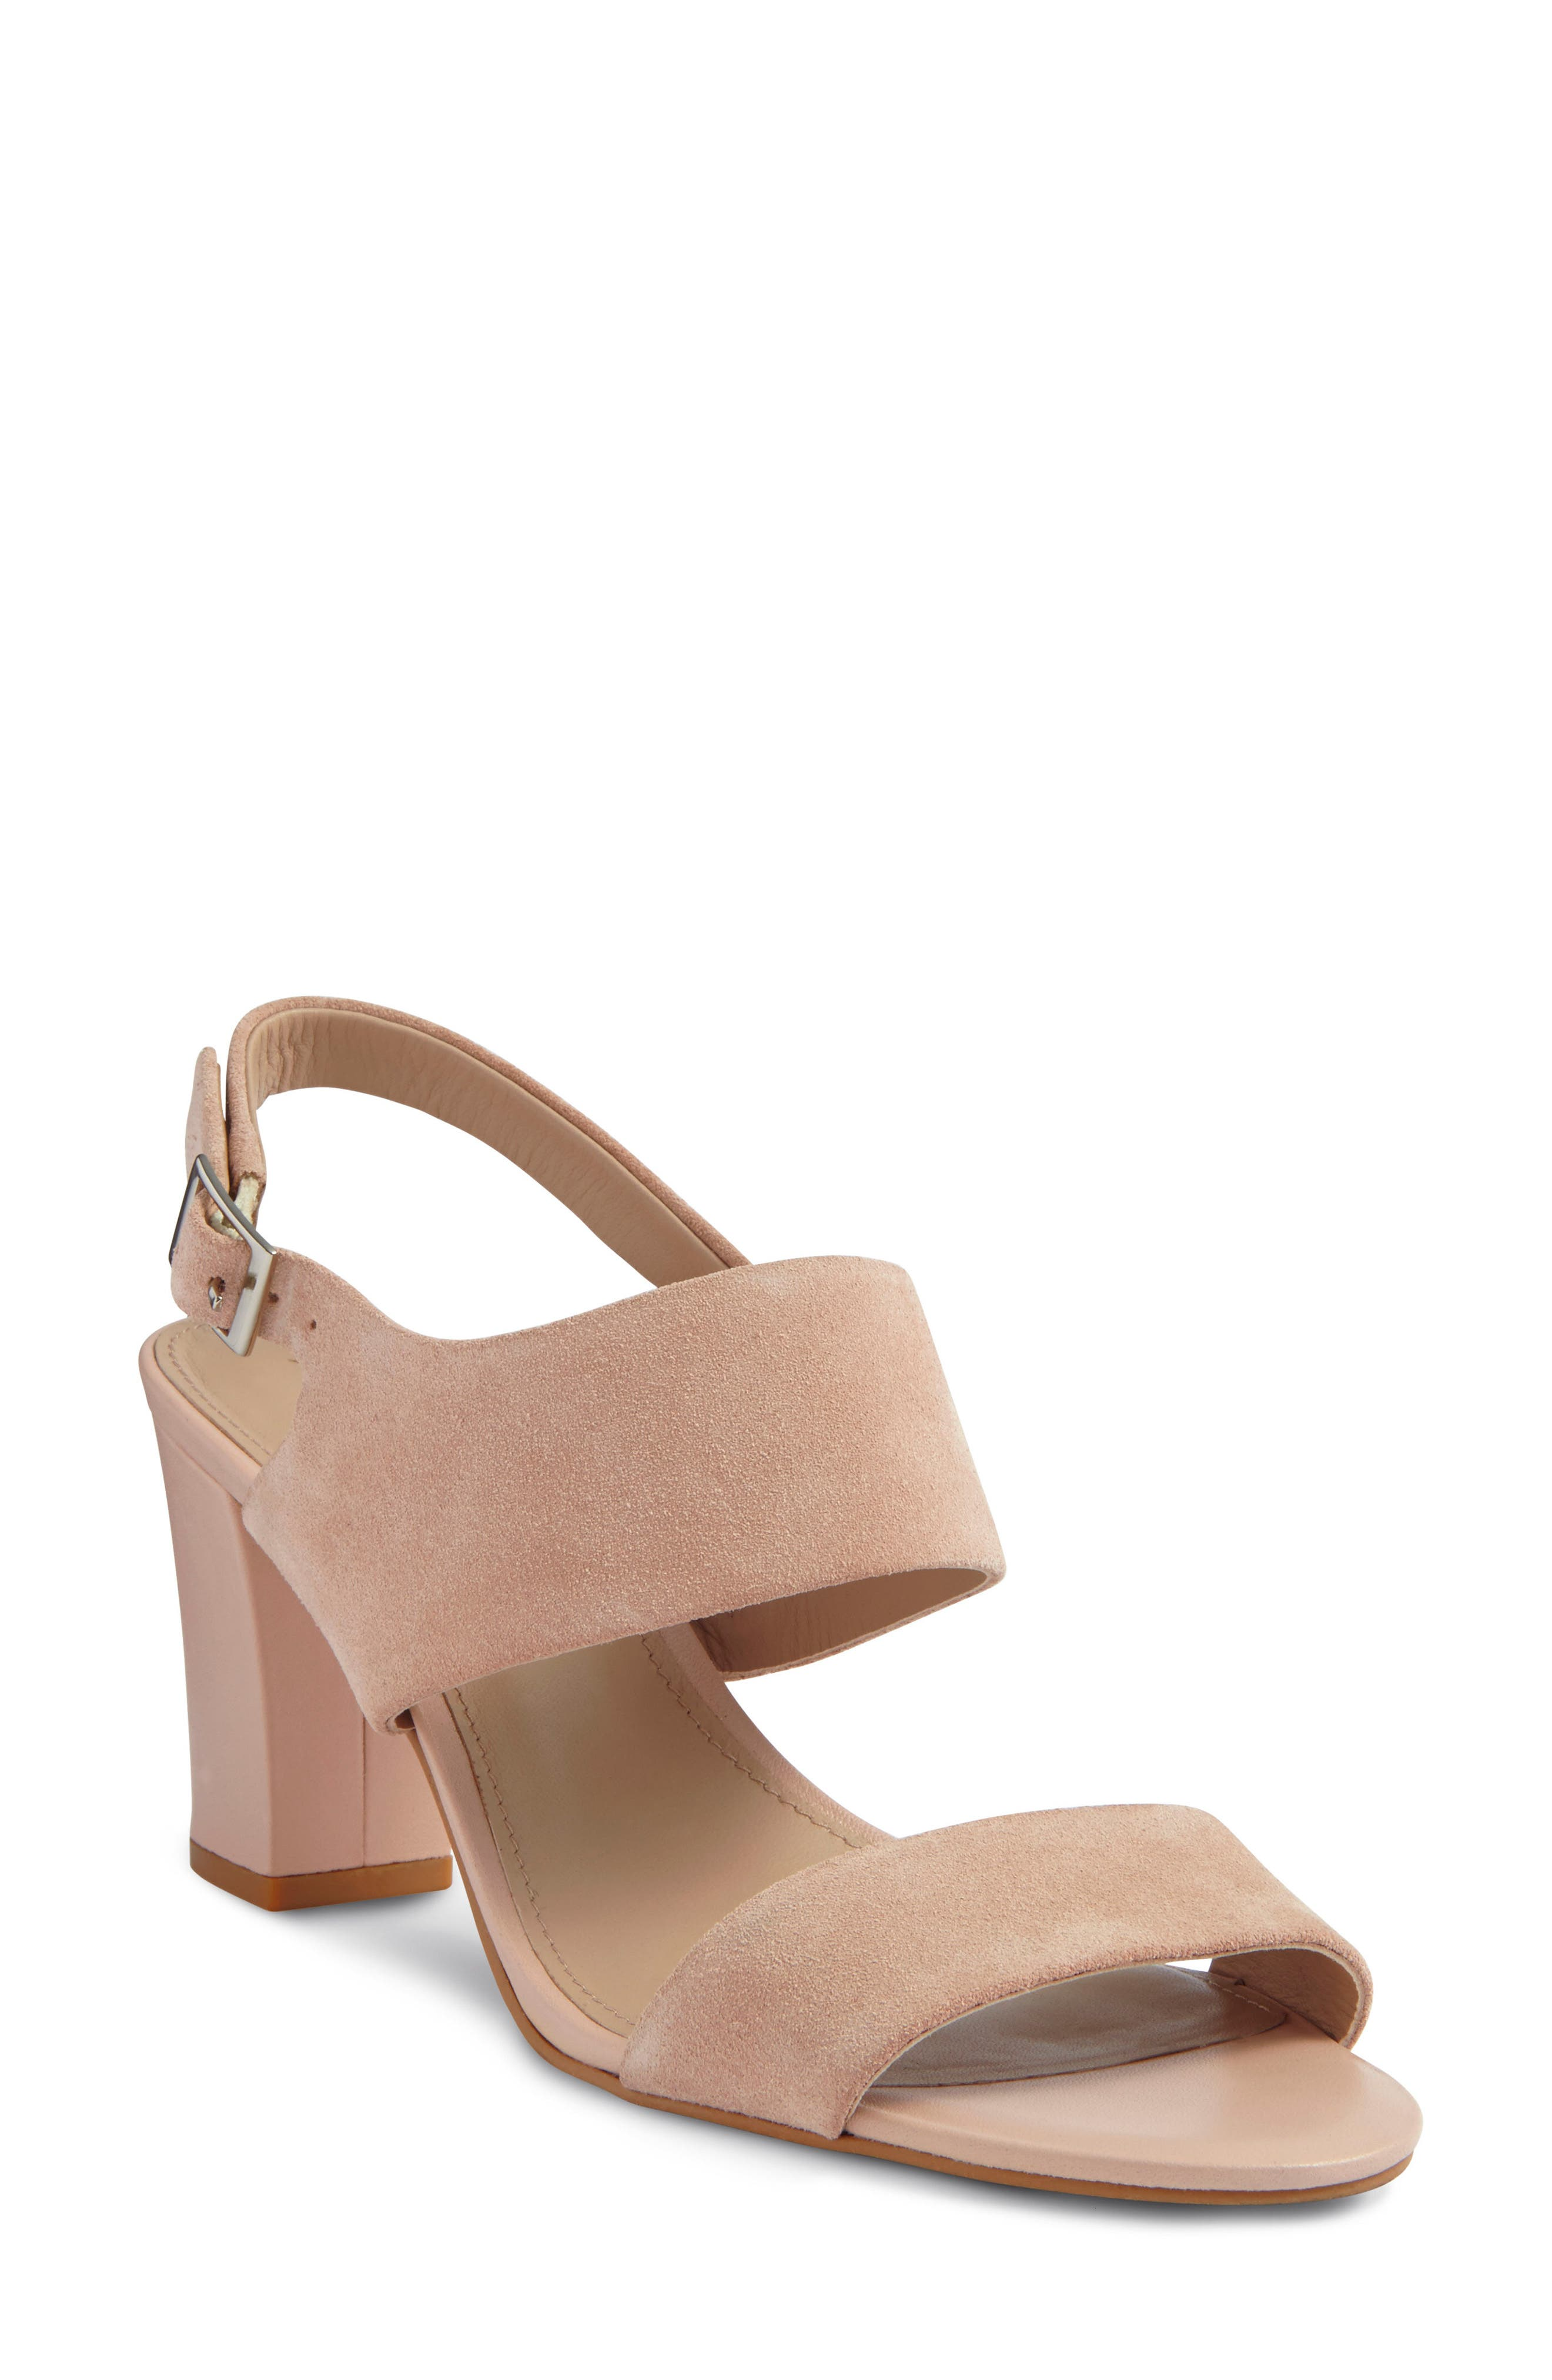 Strappy Sandal,                             Main thumbnail 1, color,                             Blush Nude Suede